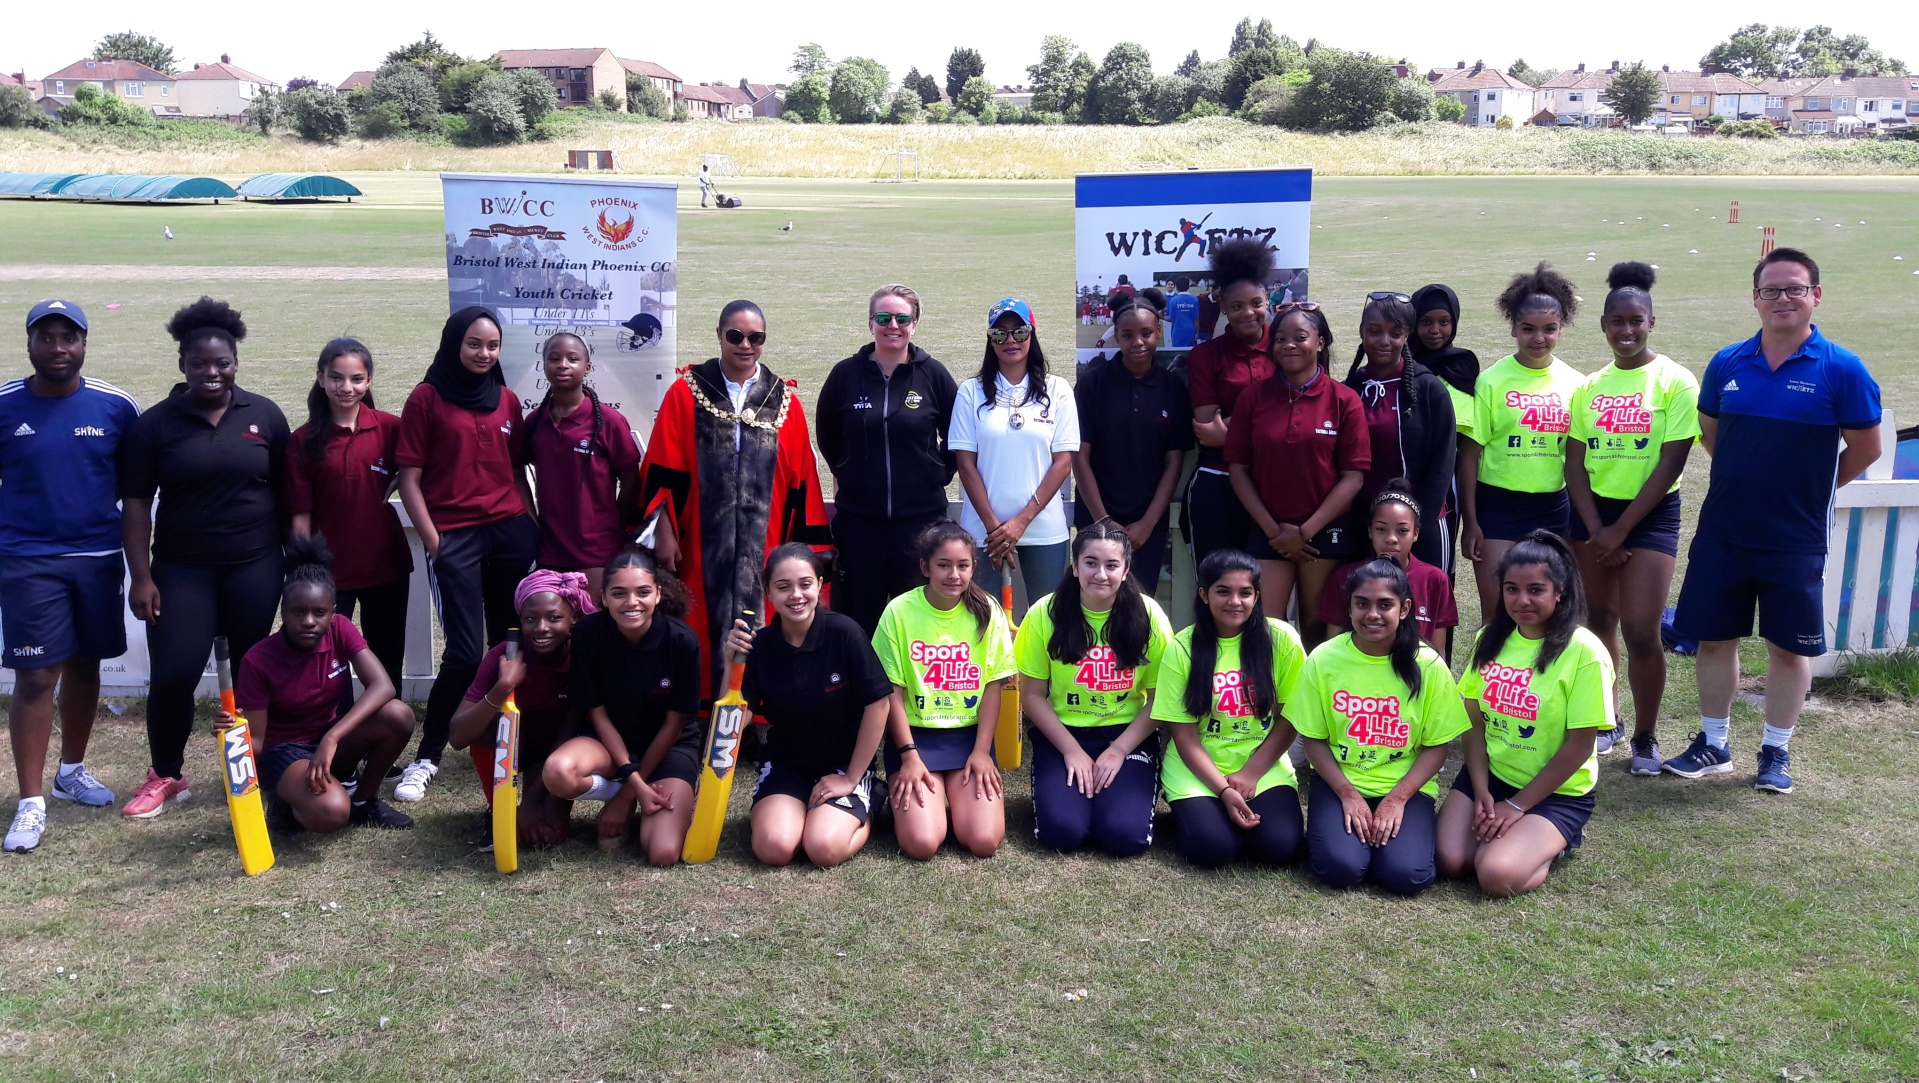 Wicketz Bristol runs Windrush legacy event at Lord Mayor's invitation